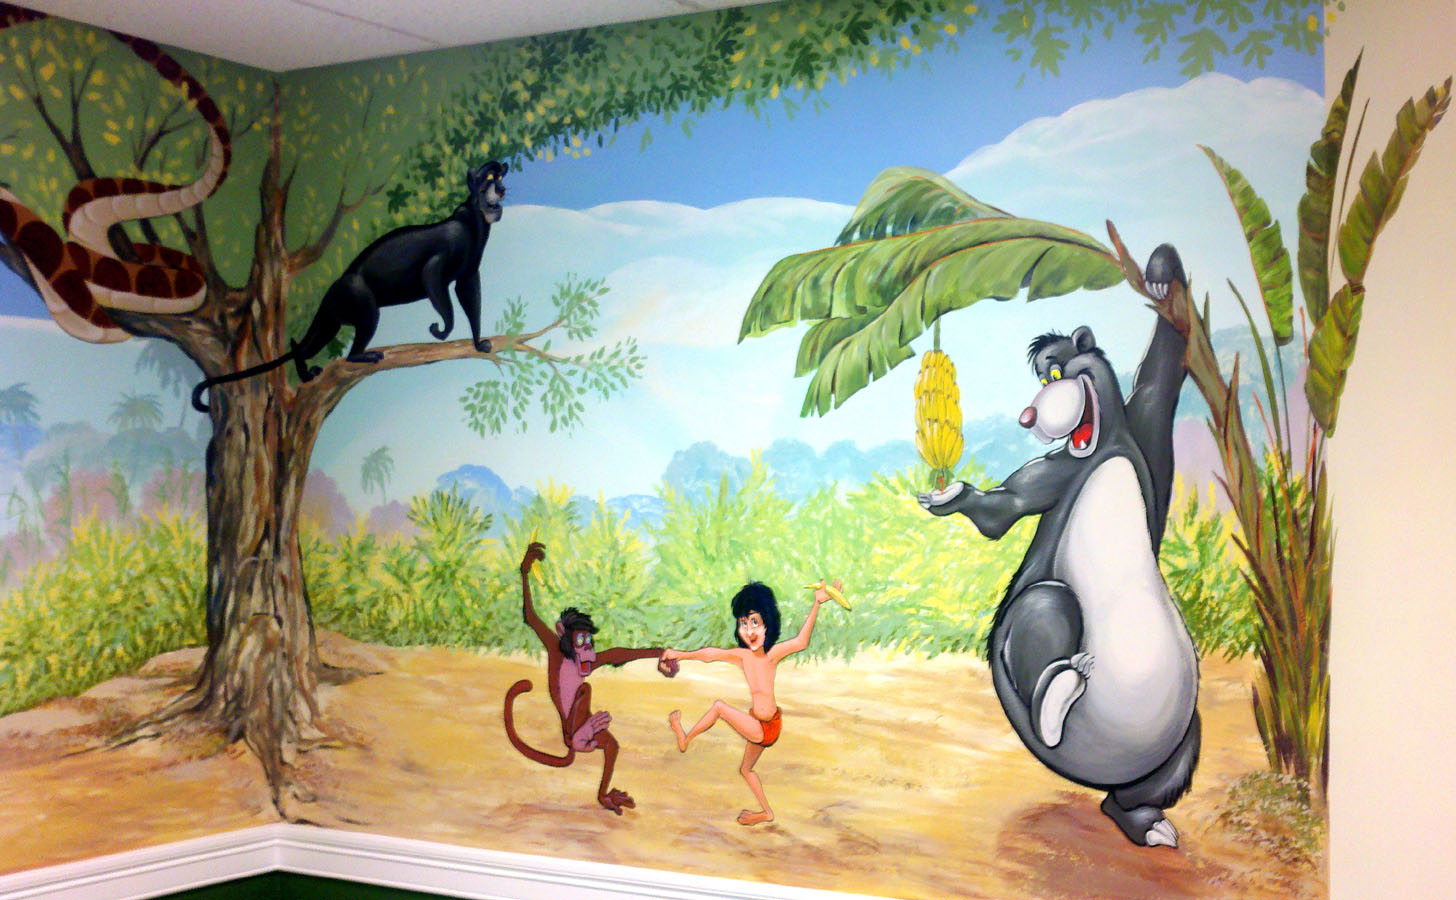 Murals2 also Wood Gates Cartoon furthermore For The Home additionally Nostomania likewise 70361. on old walls cartoon